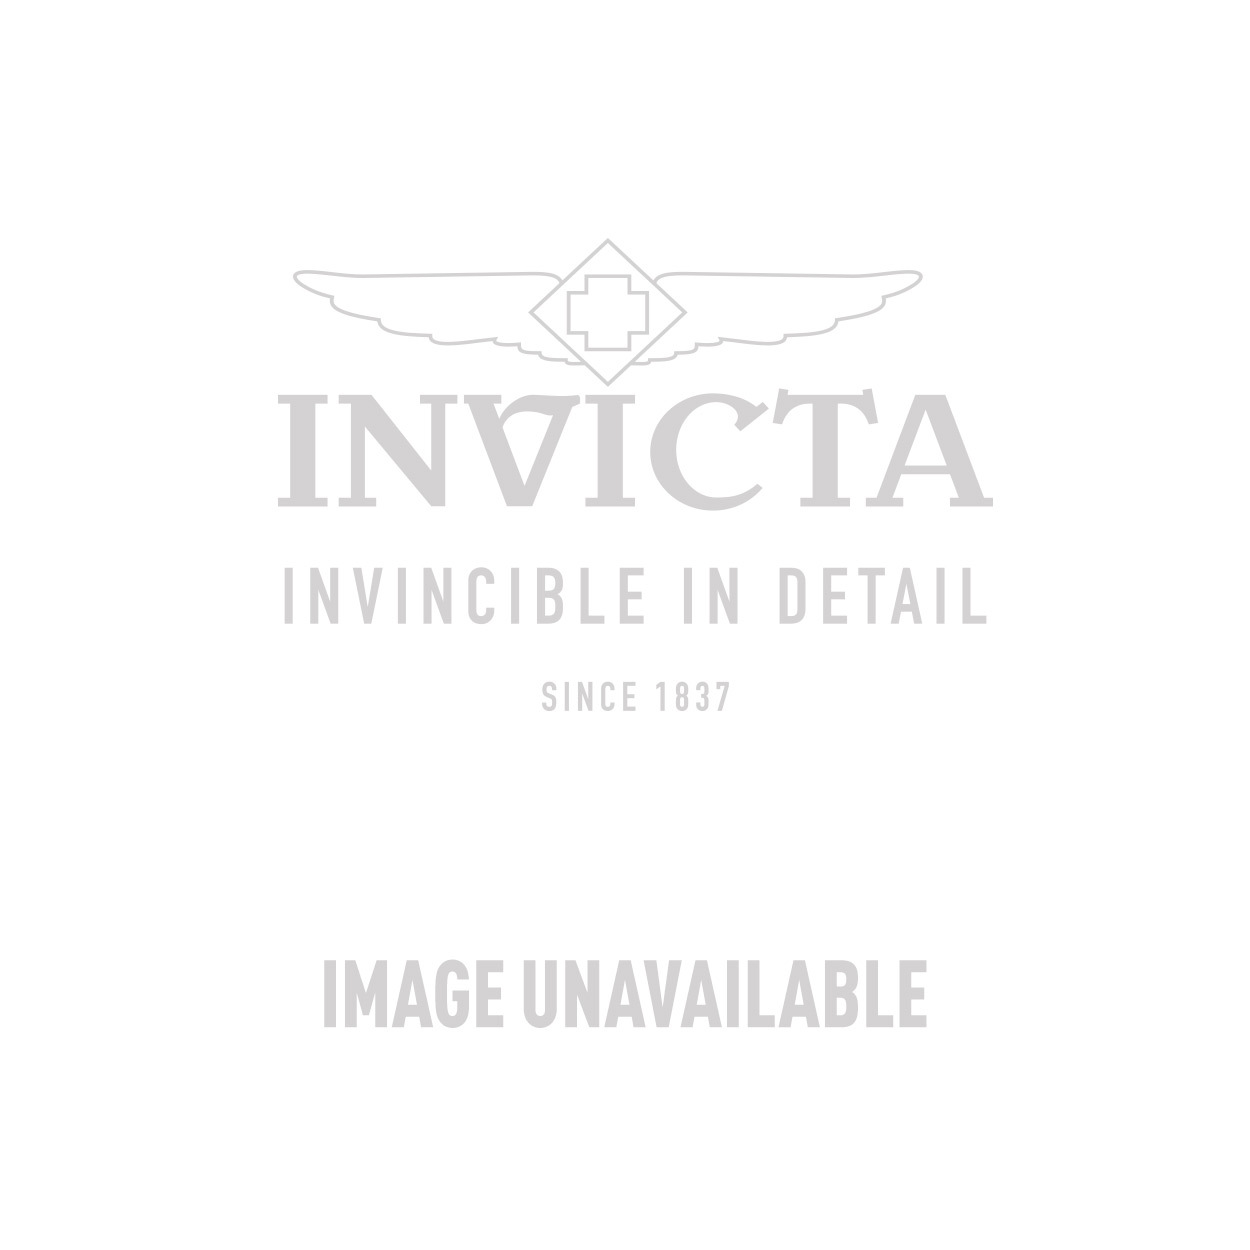 Invicta Corduba Quartz Watch - Stainless Steel case with Red tone Leather band - Model 18931